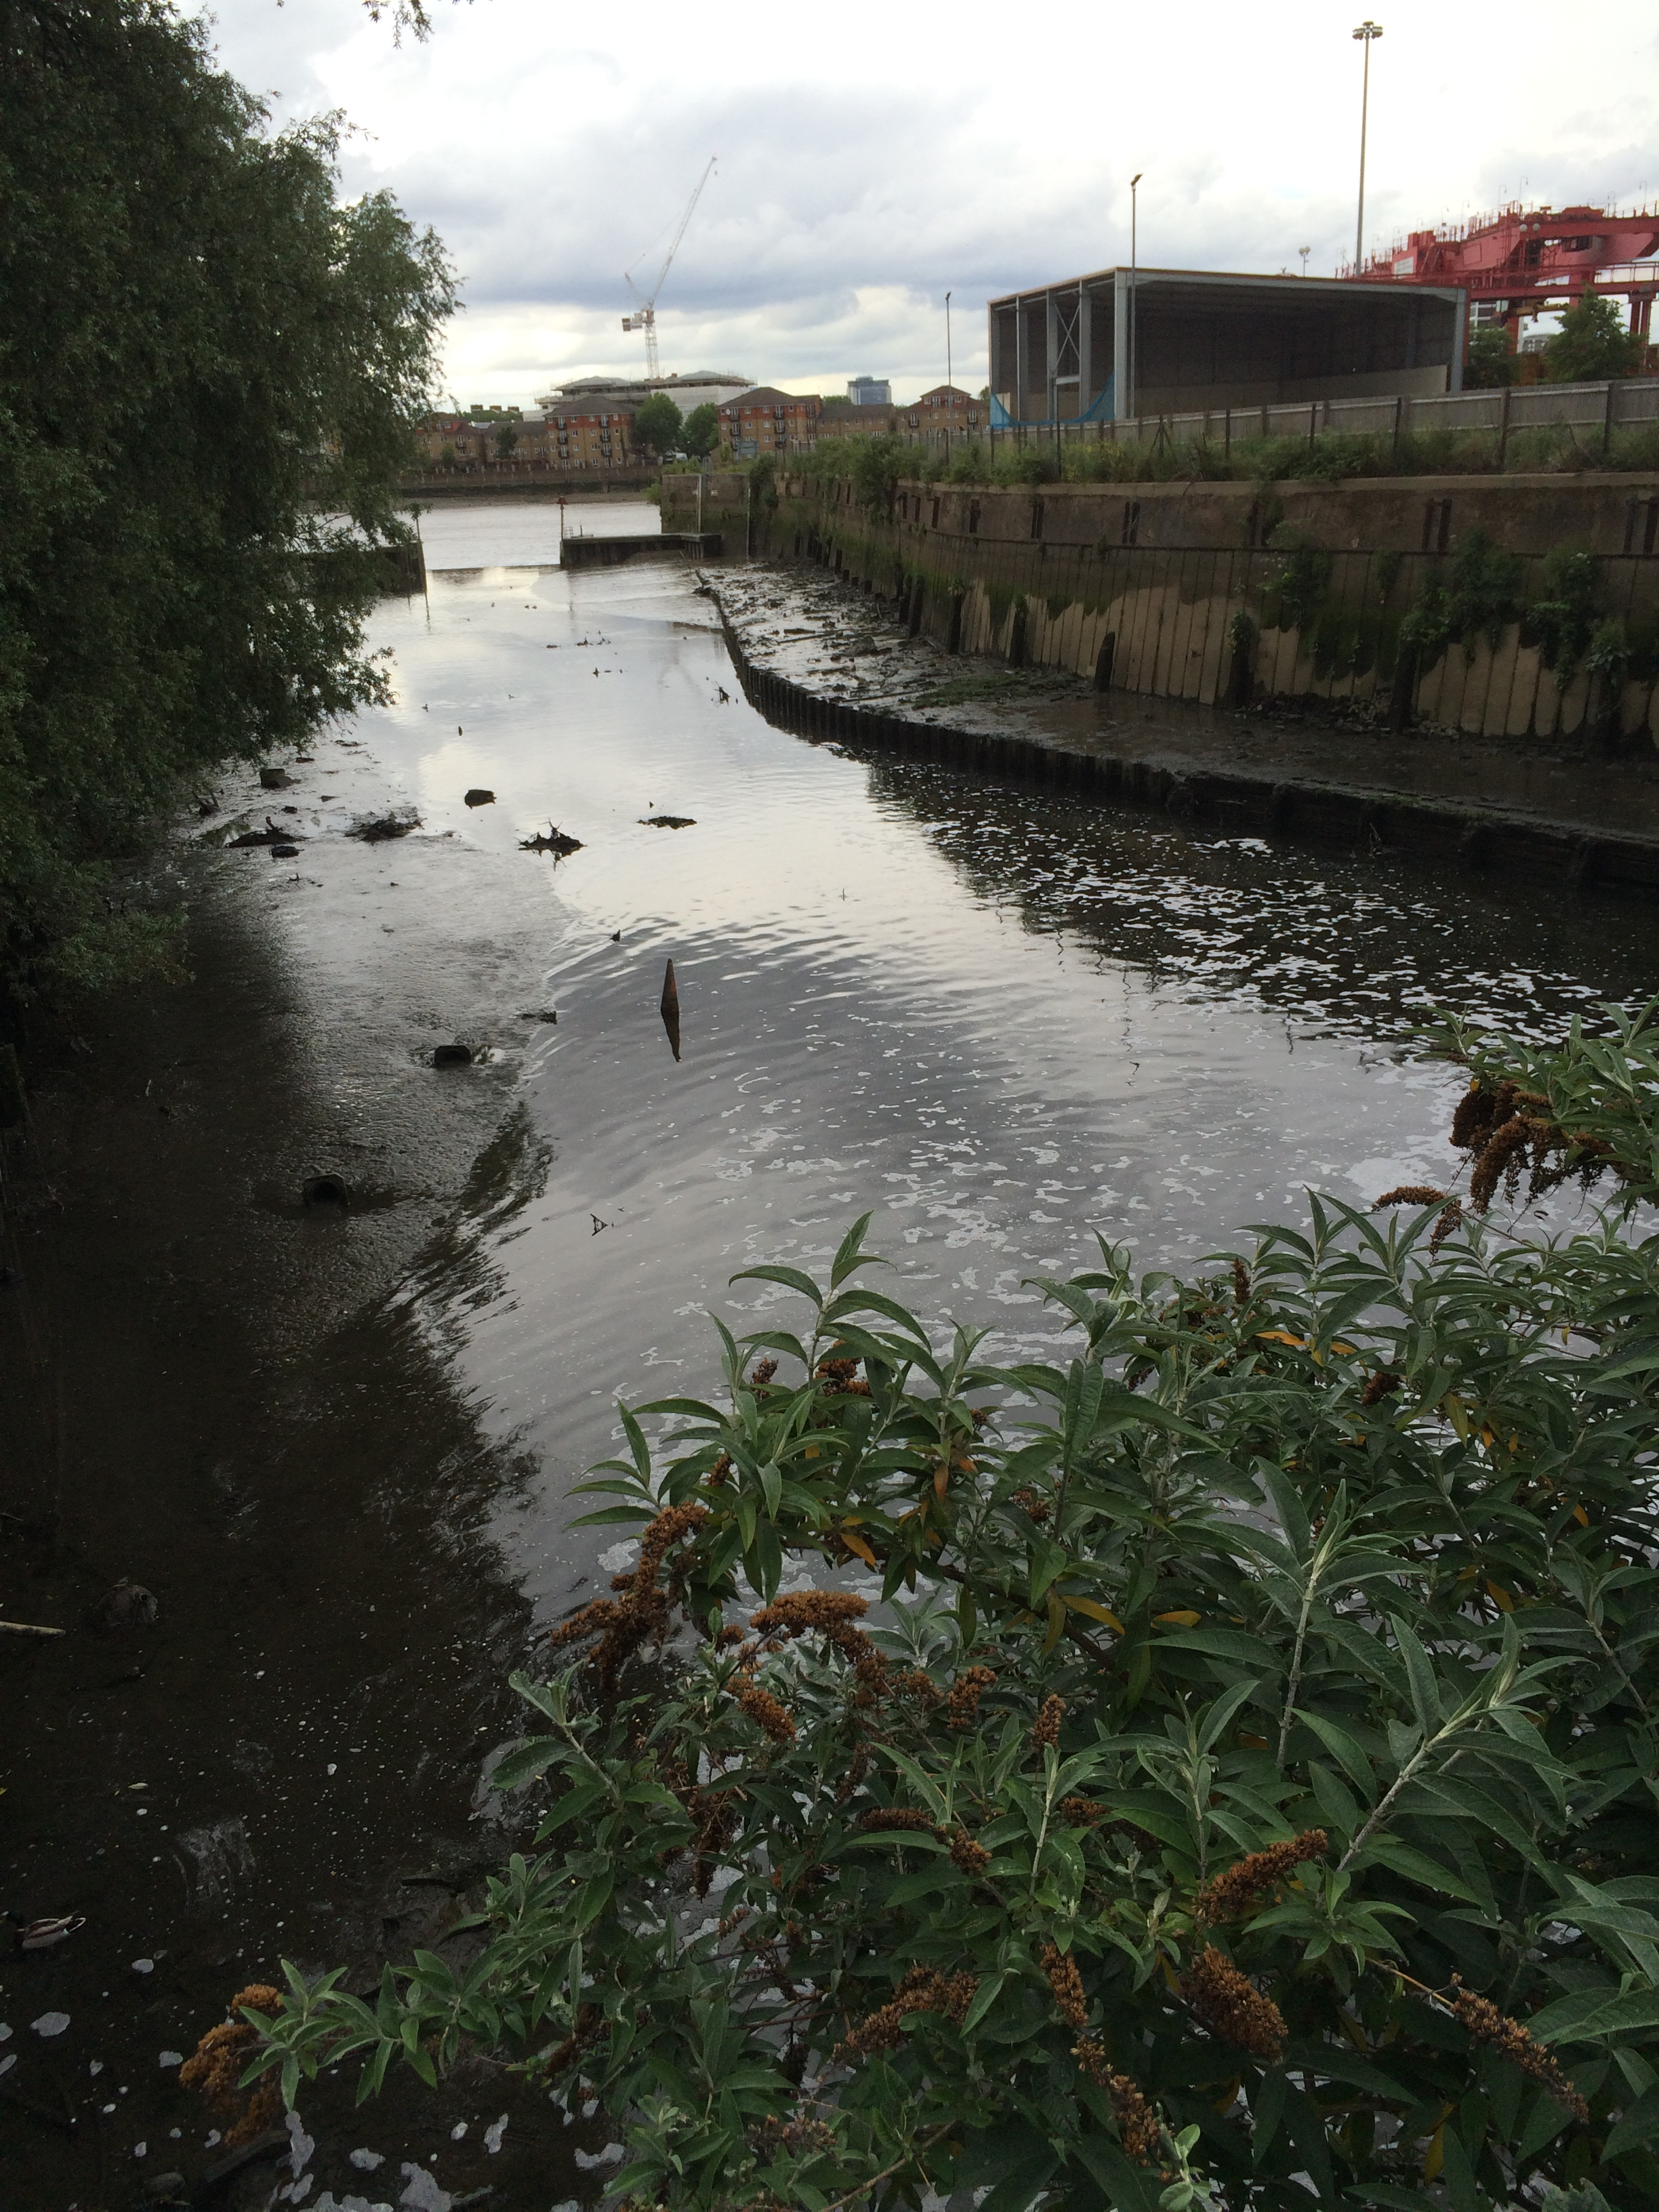 Wandle Modern wandering along the wandle s wonderful industrial history past in